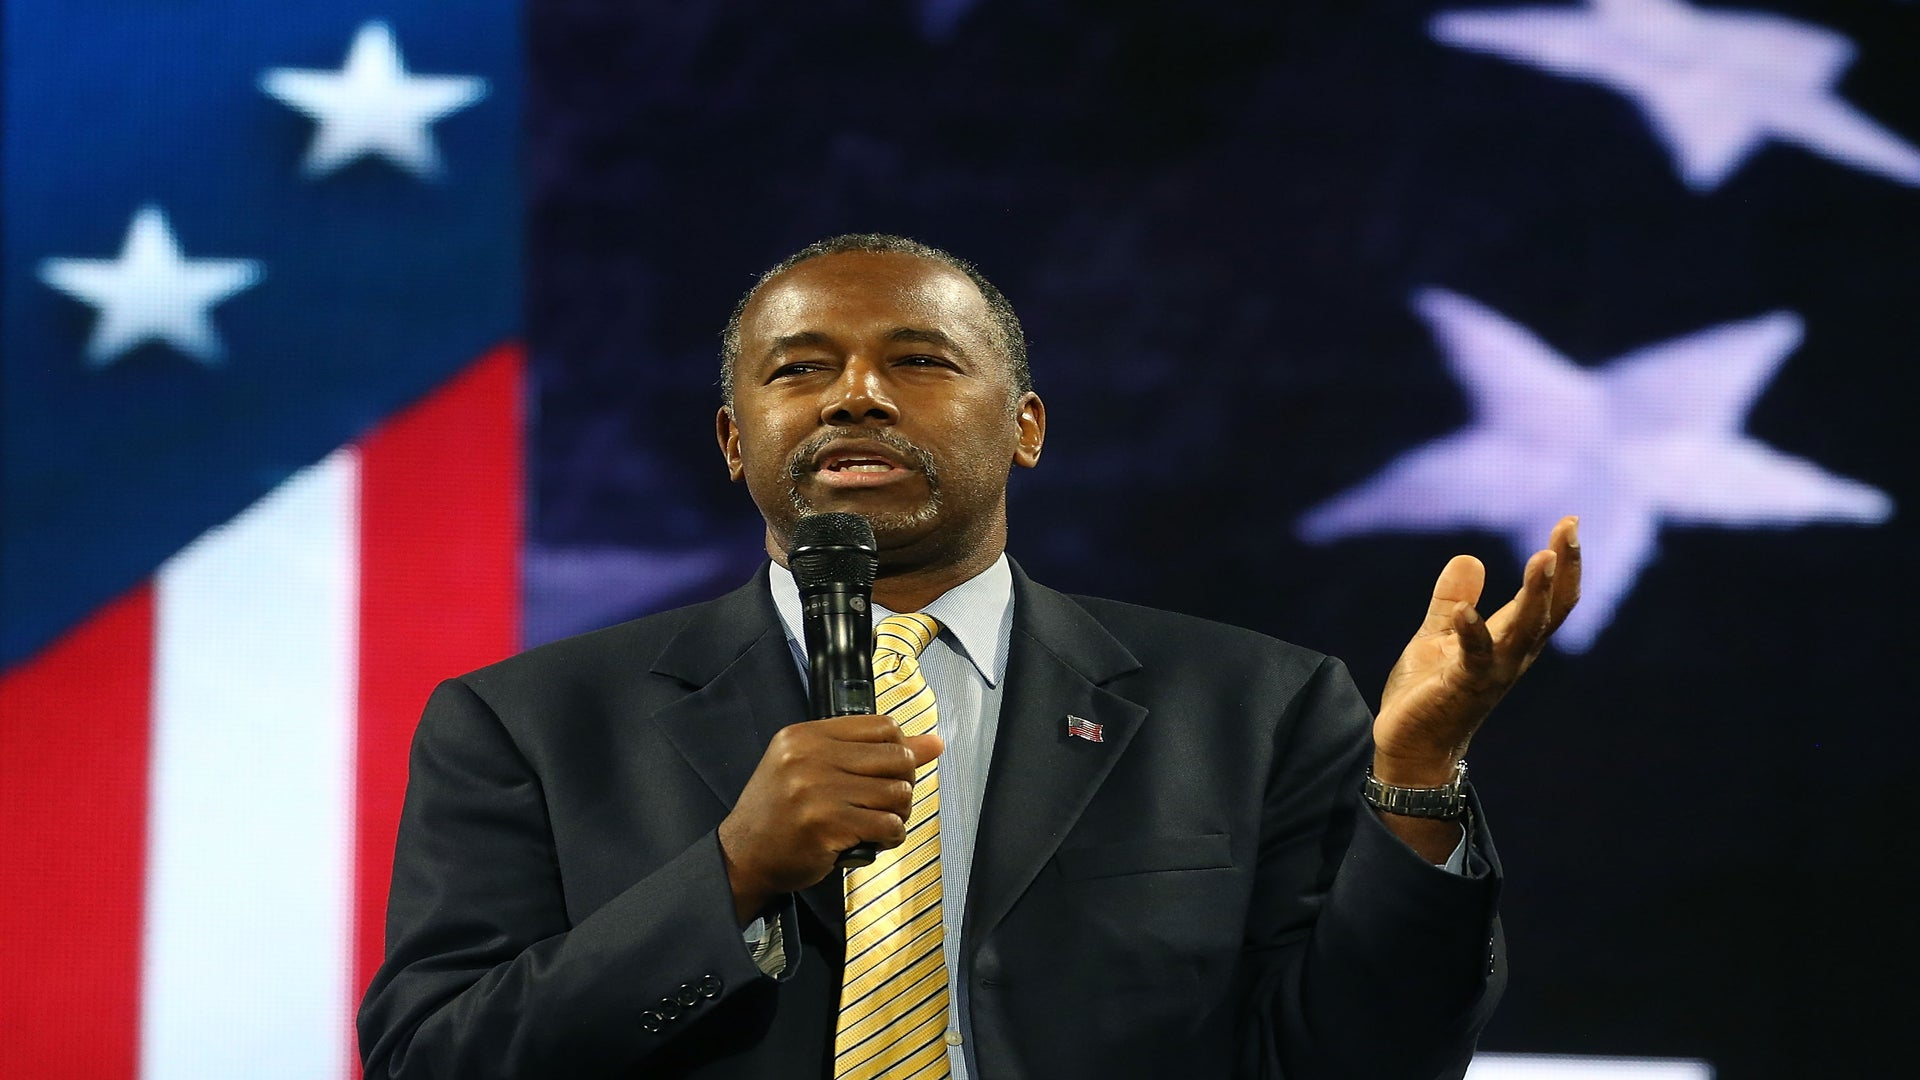 Ben Carson Tried To Deprive Low-Income Families Of Better Housing Opportunities..But It Didn't Work